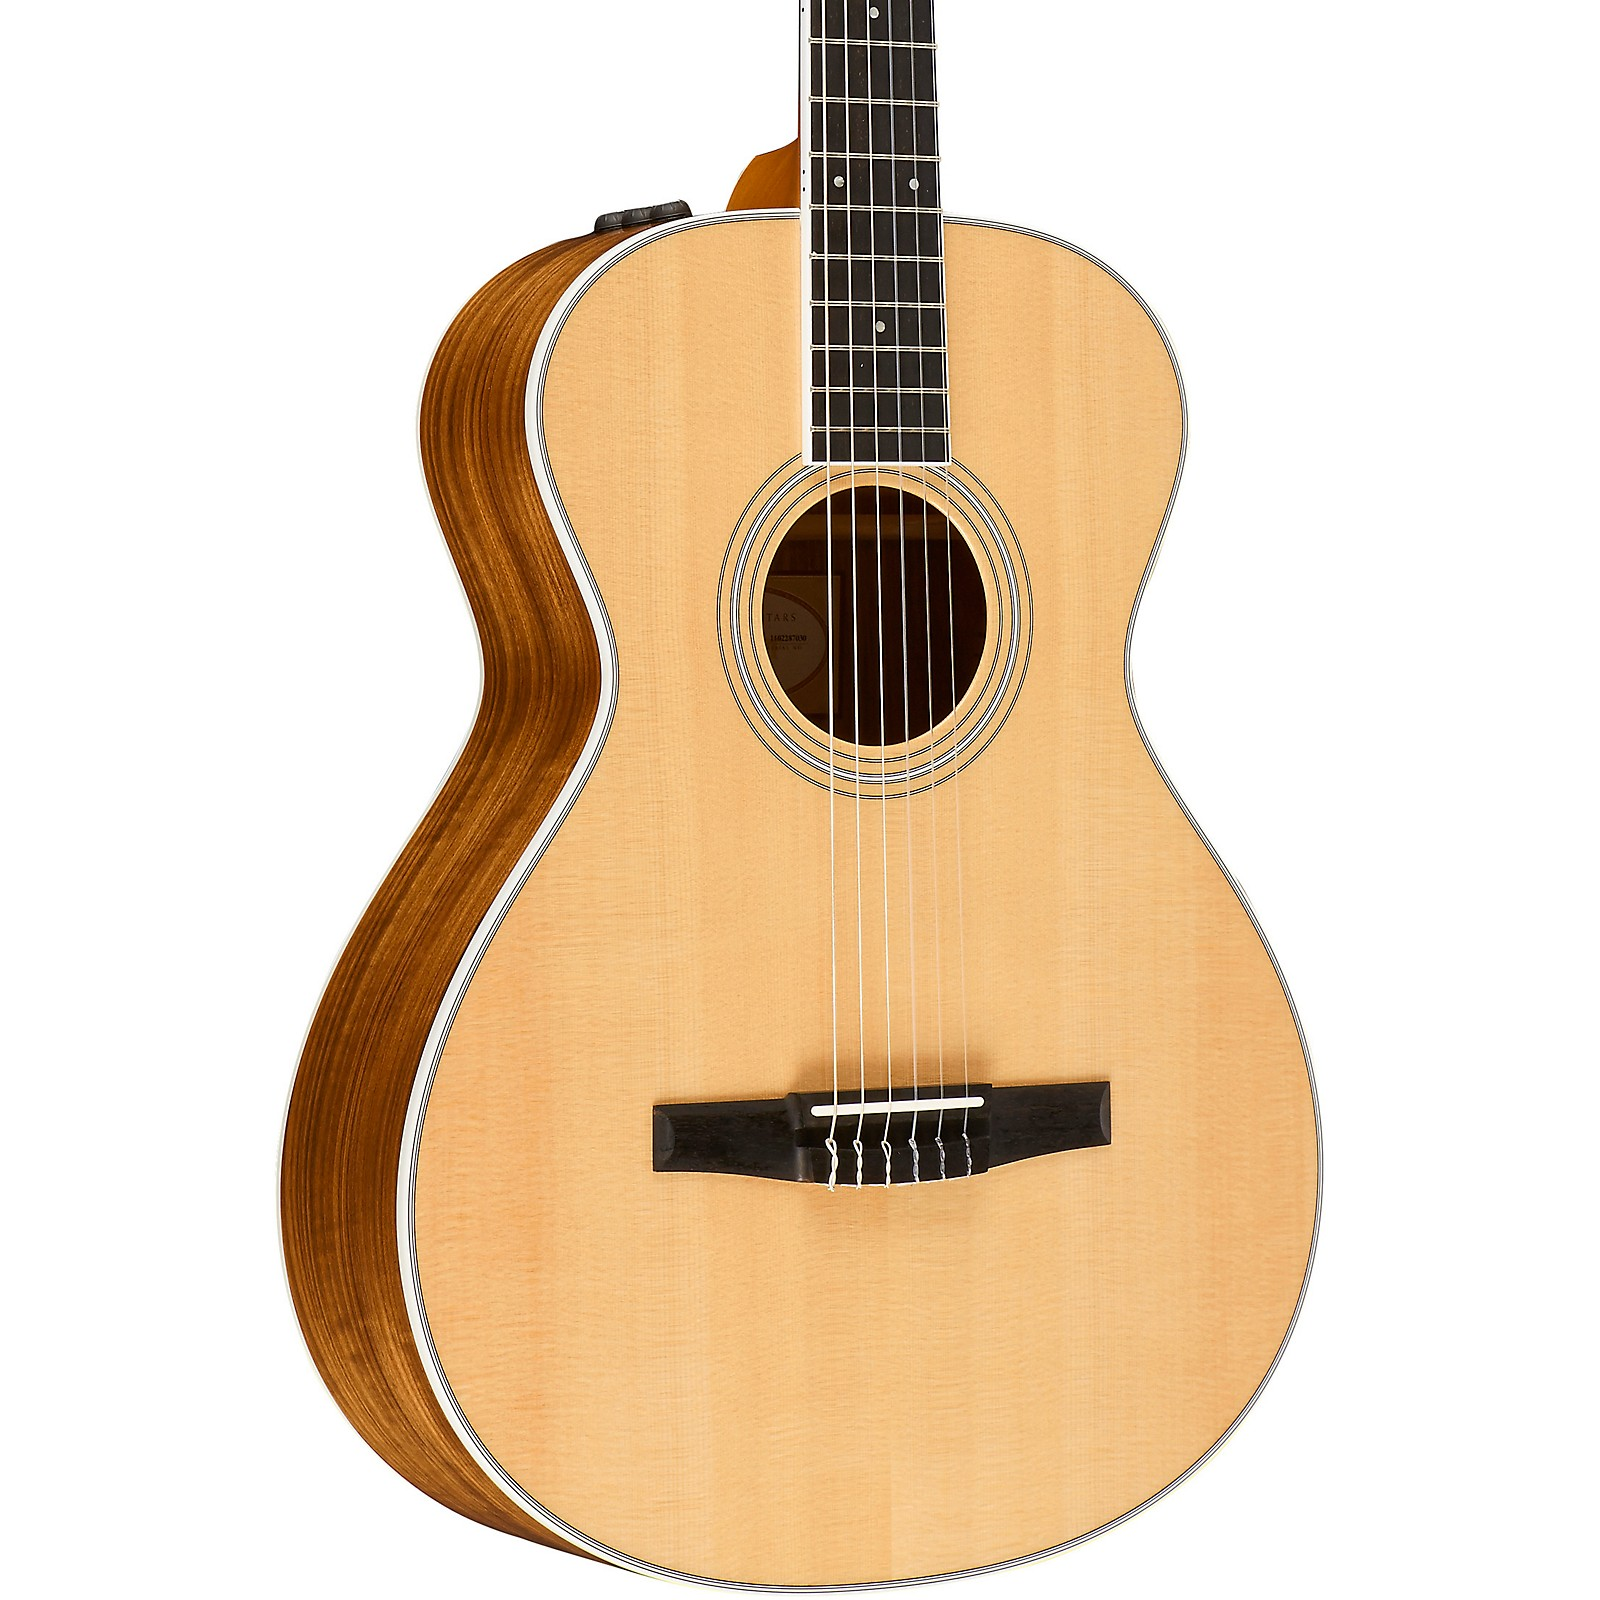 Taylor 412e-N Grand Concert Nylon String Acoustic-Electric Guitar